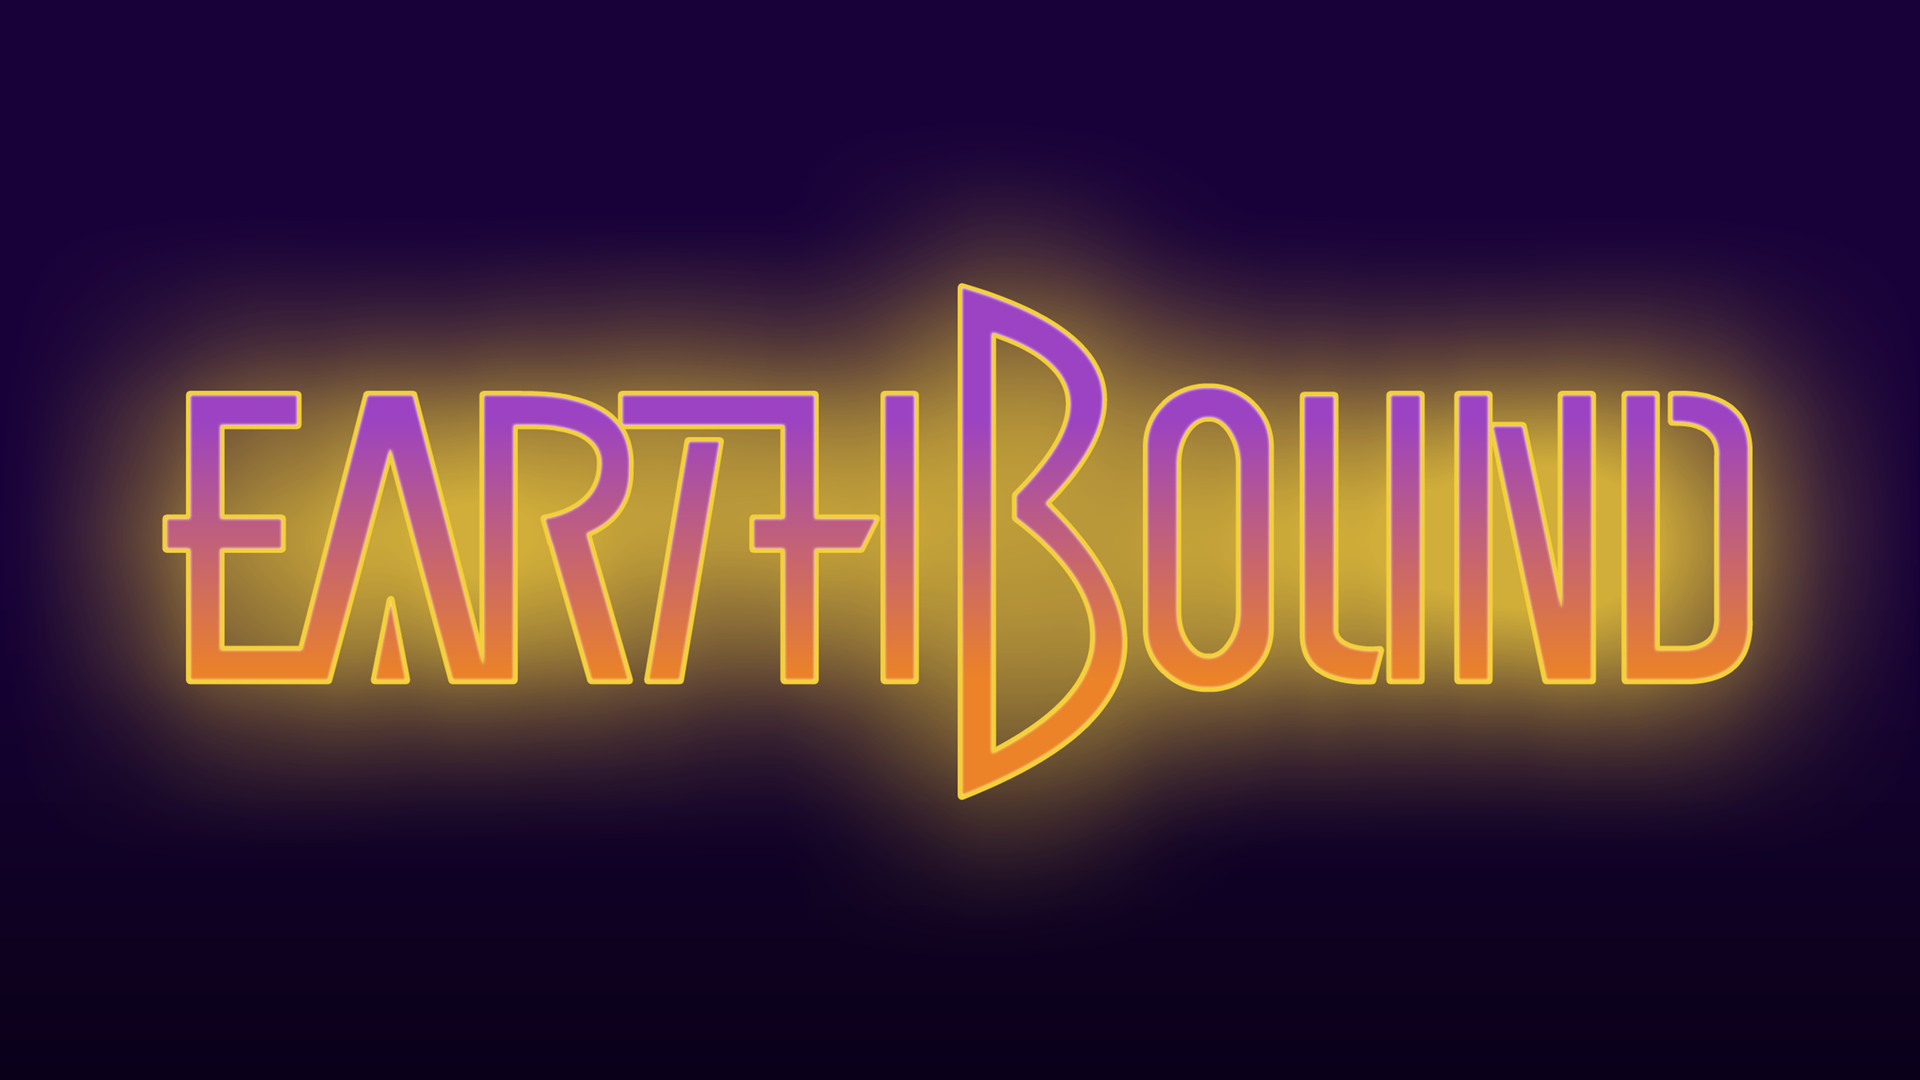 Earthbound Logo Wallpaper 1920x1080 by hocotate civ on 1920x1080